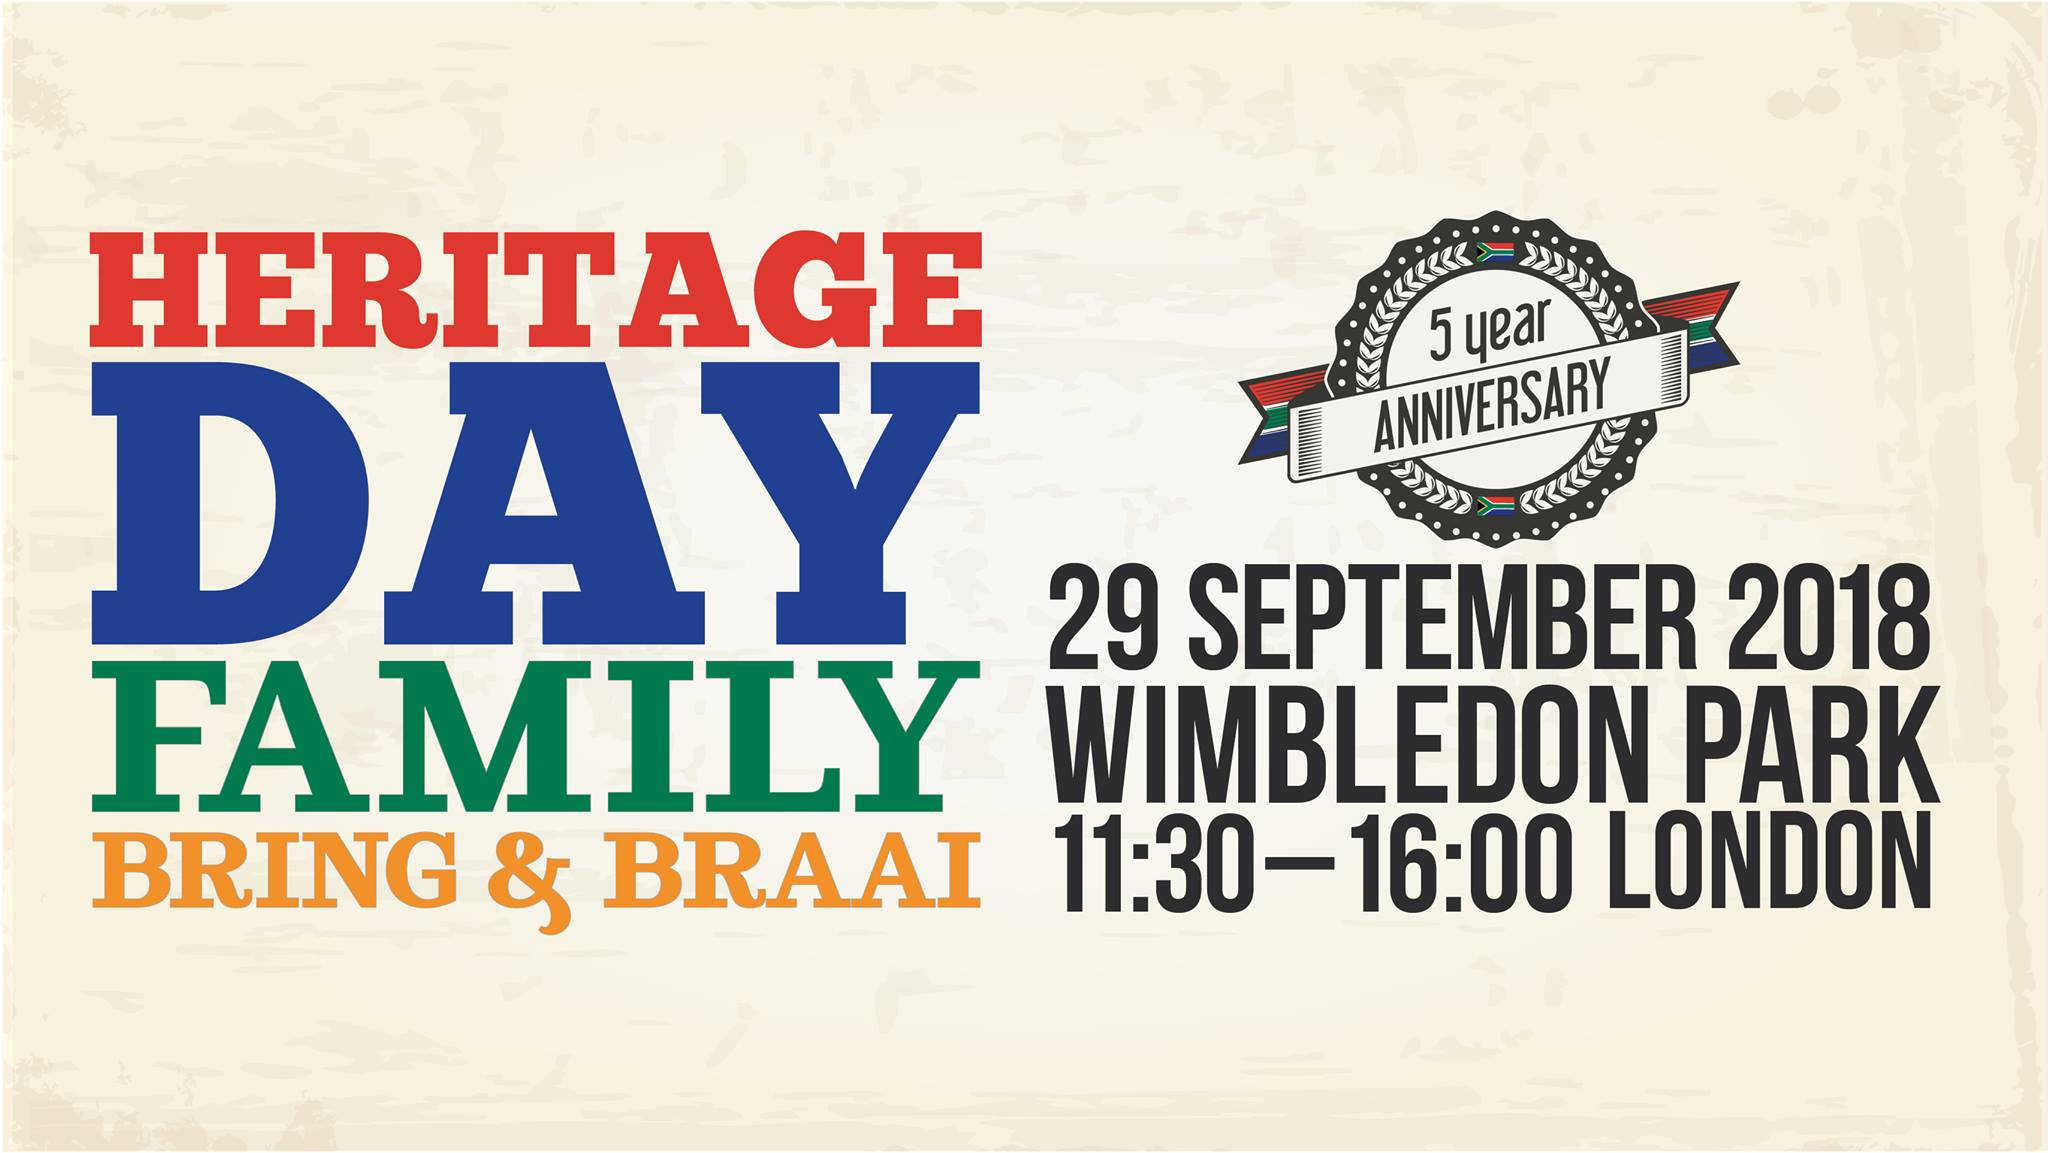 South Africa Heritage Day Wimbeldon Park London 2018